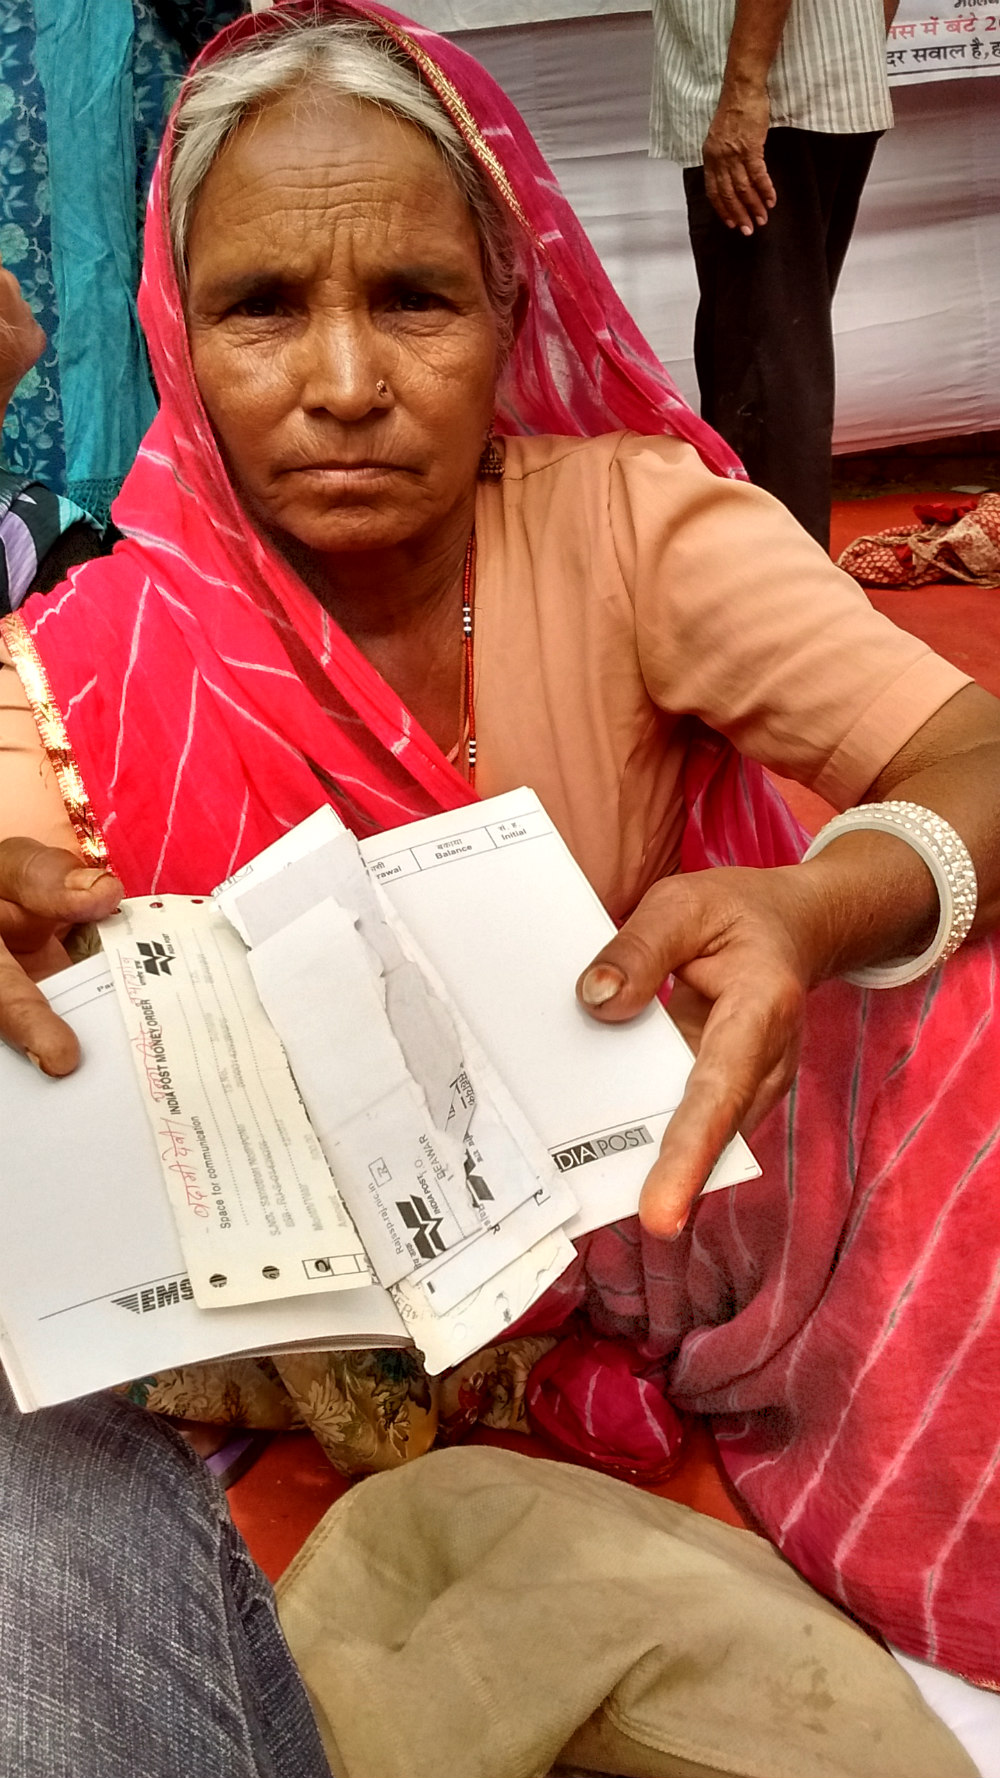 Badami Devi from a village in Ajmer has not received her pension for six months.